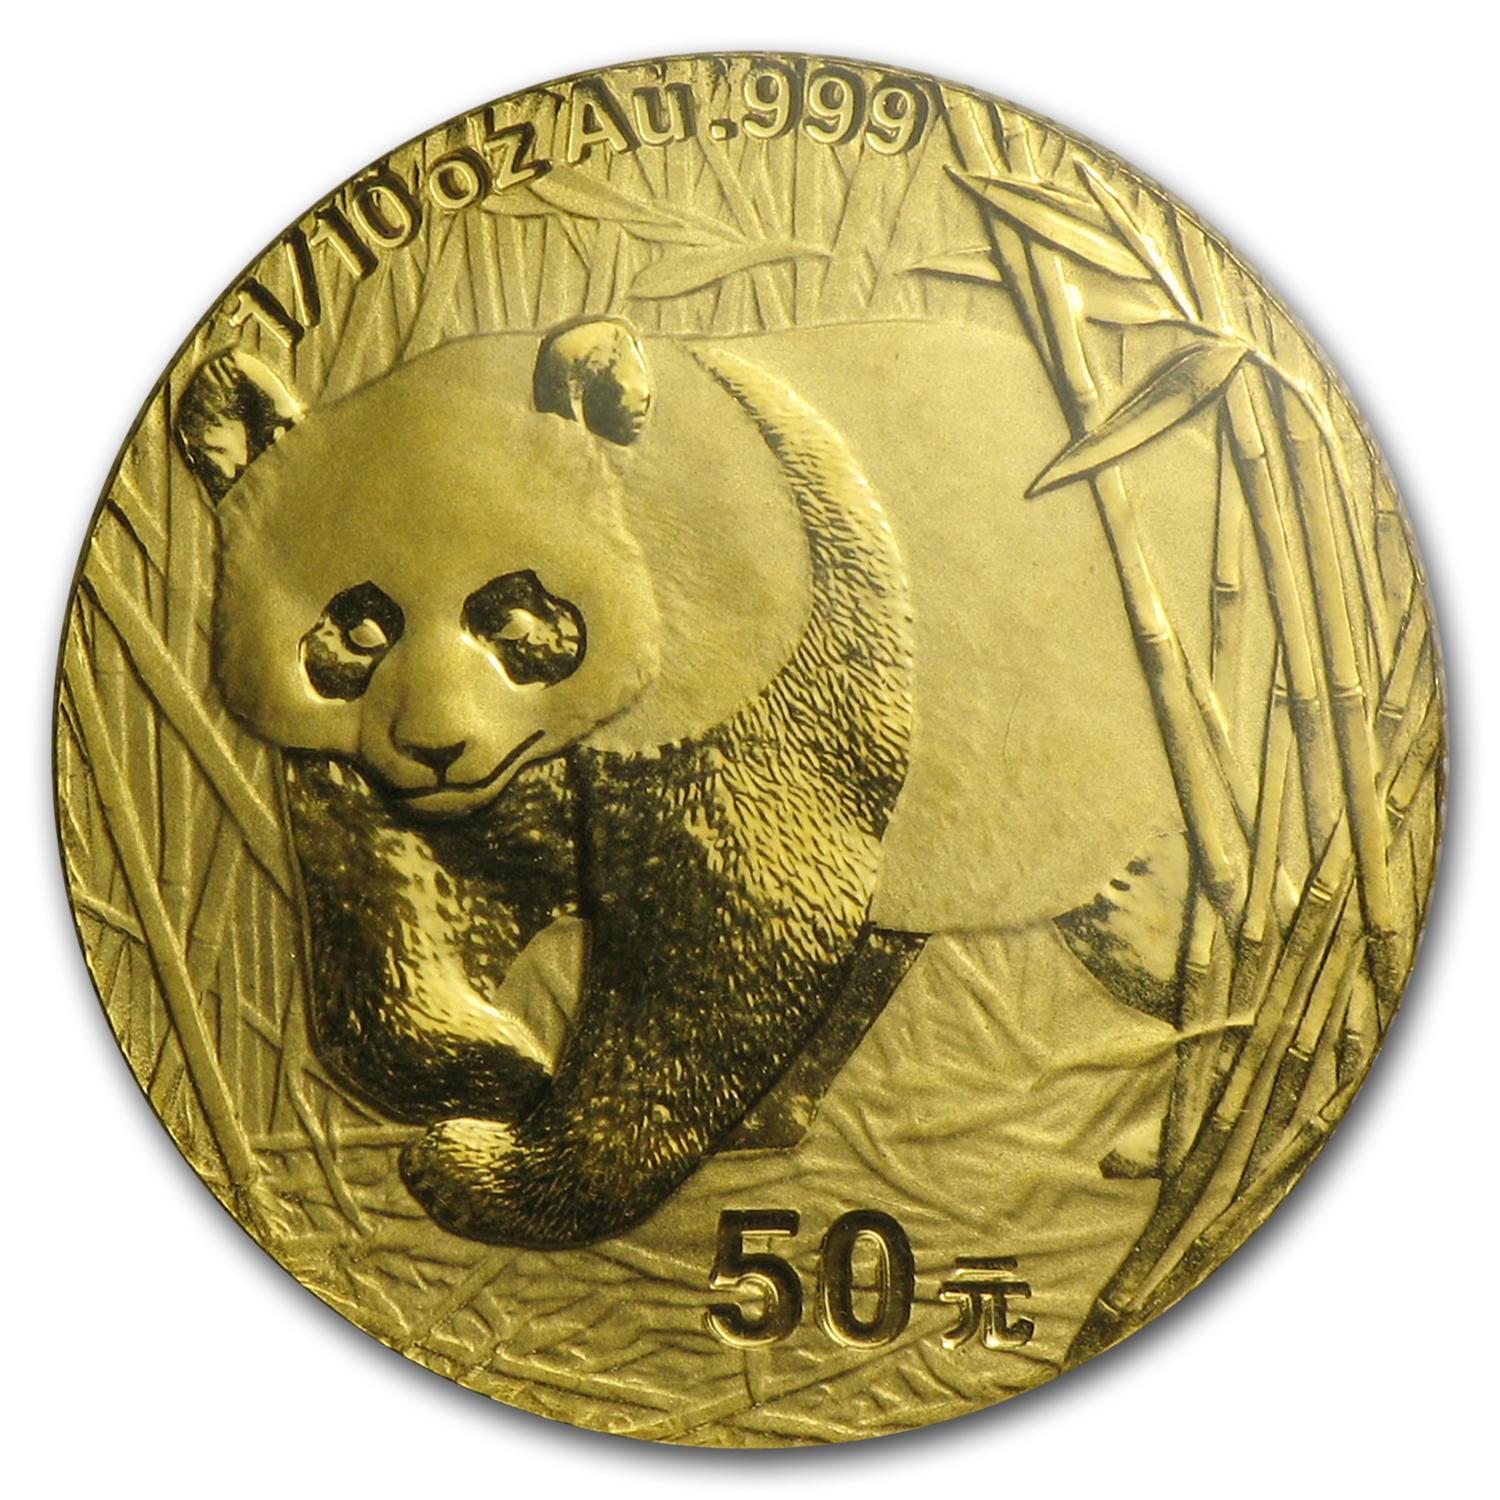 2002 China 1/10 oz Gold Panda BU (Sealed)